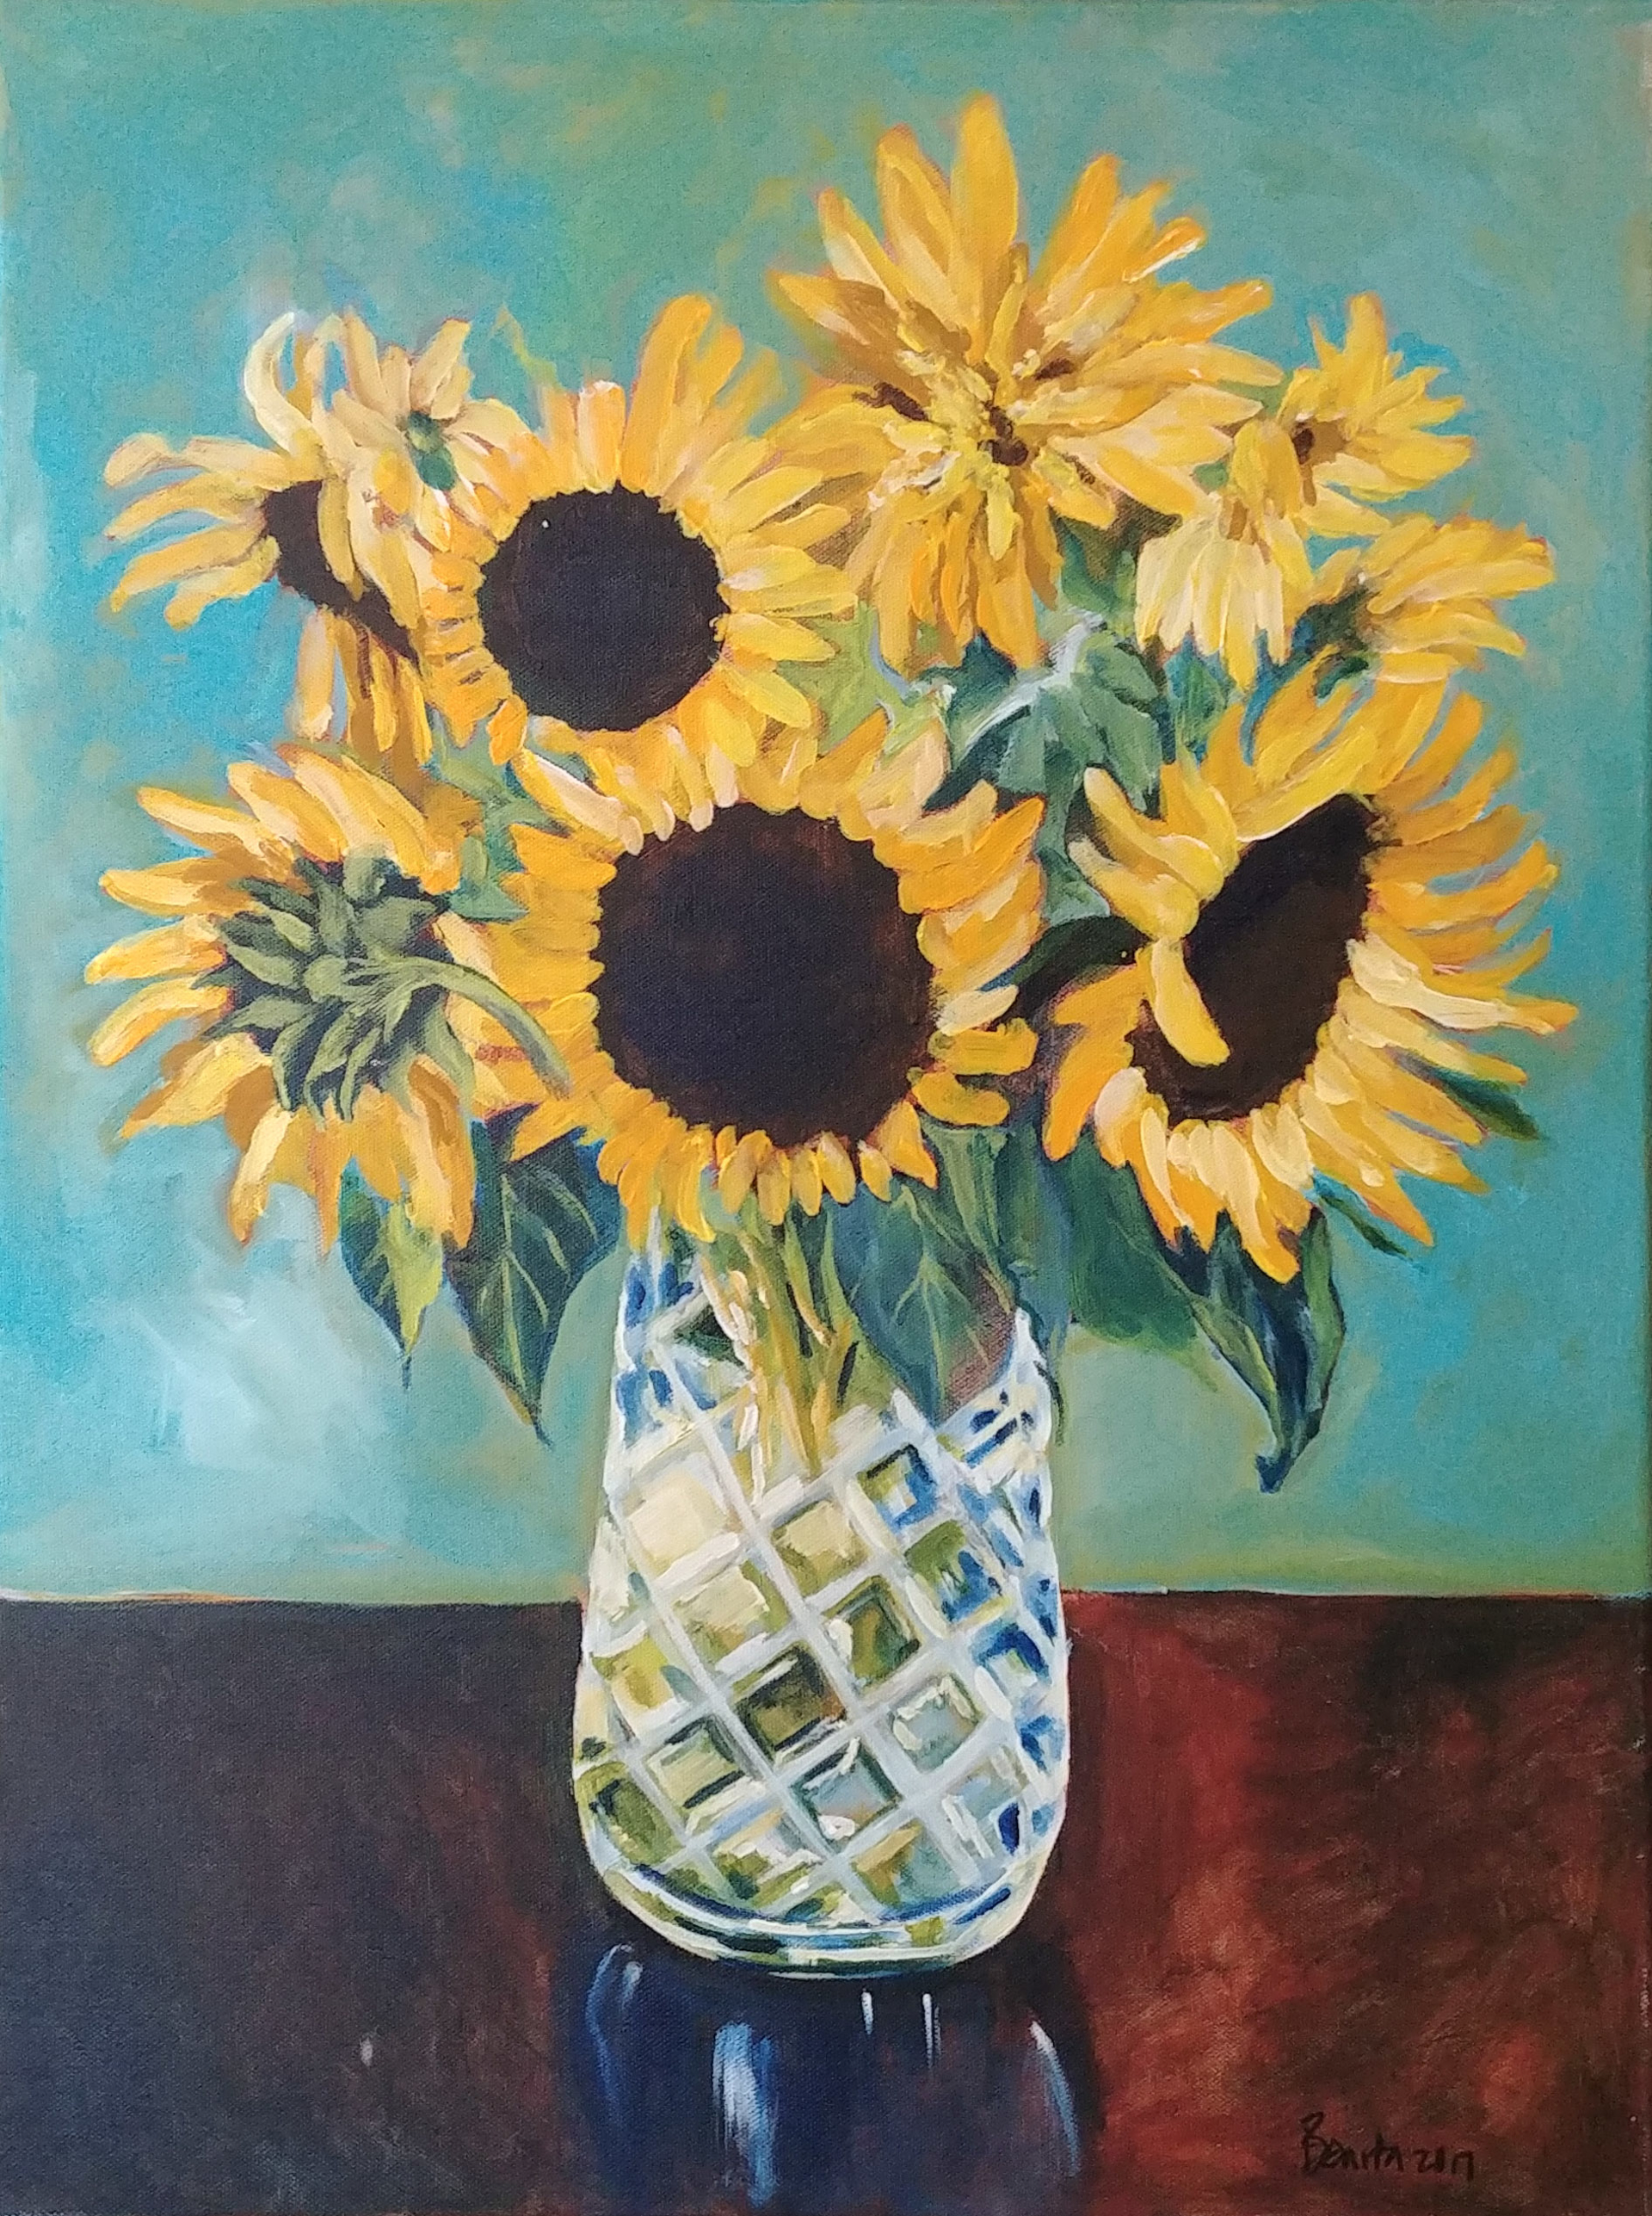 Sunflowers in Crystal by Benita Cole (McMinnville, OR)